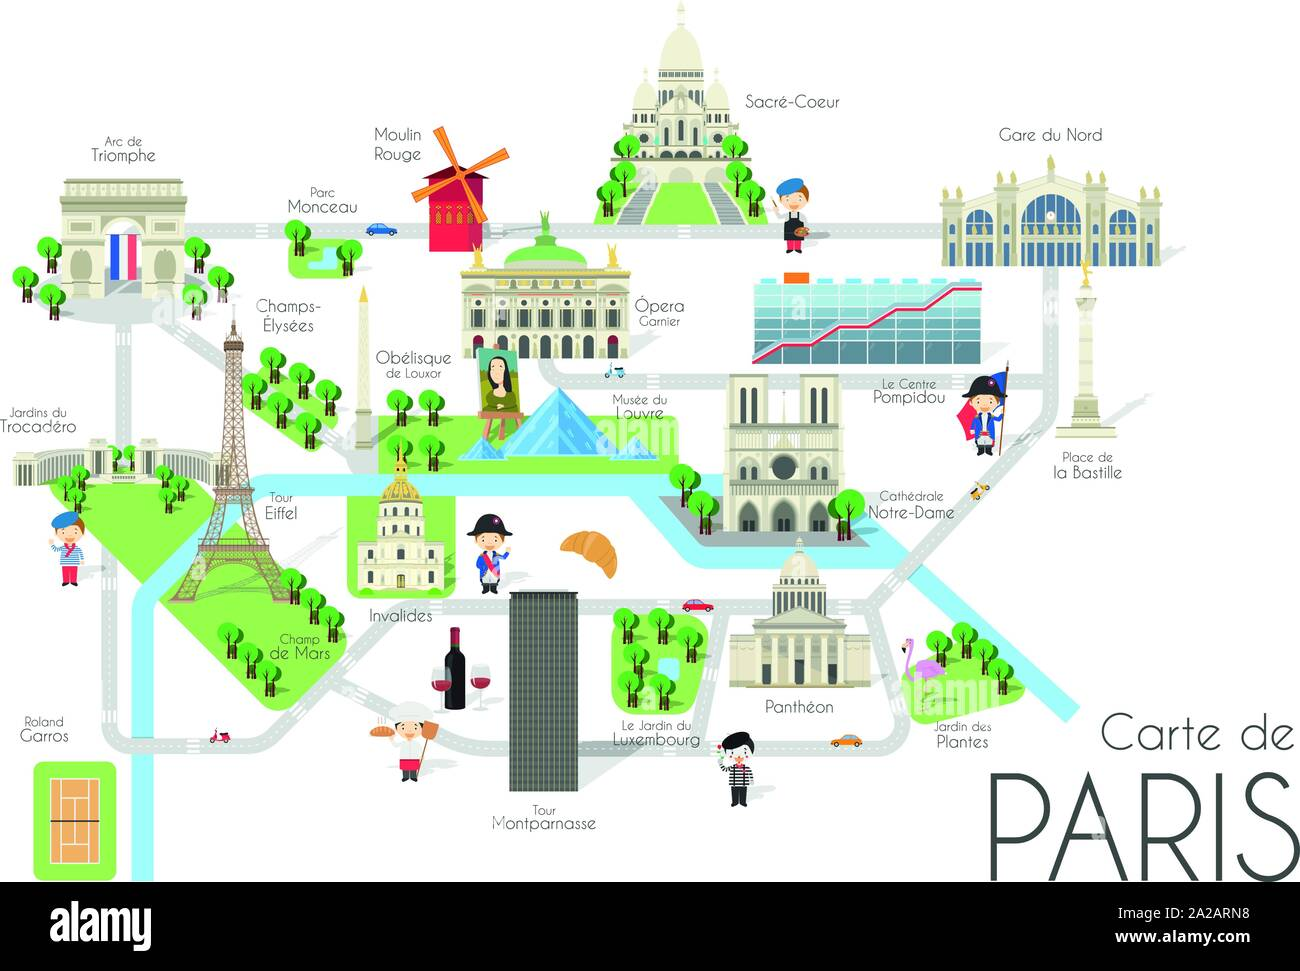 Cartoon Vector Map Of The City Of Paris France Travel Illustration With Landmarks And Main Attractions Stock Vector Image Art Alamy